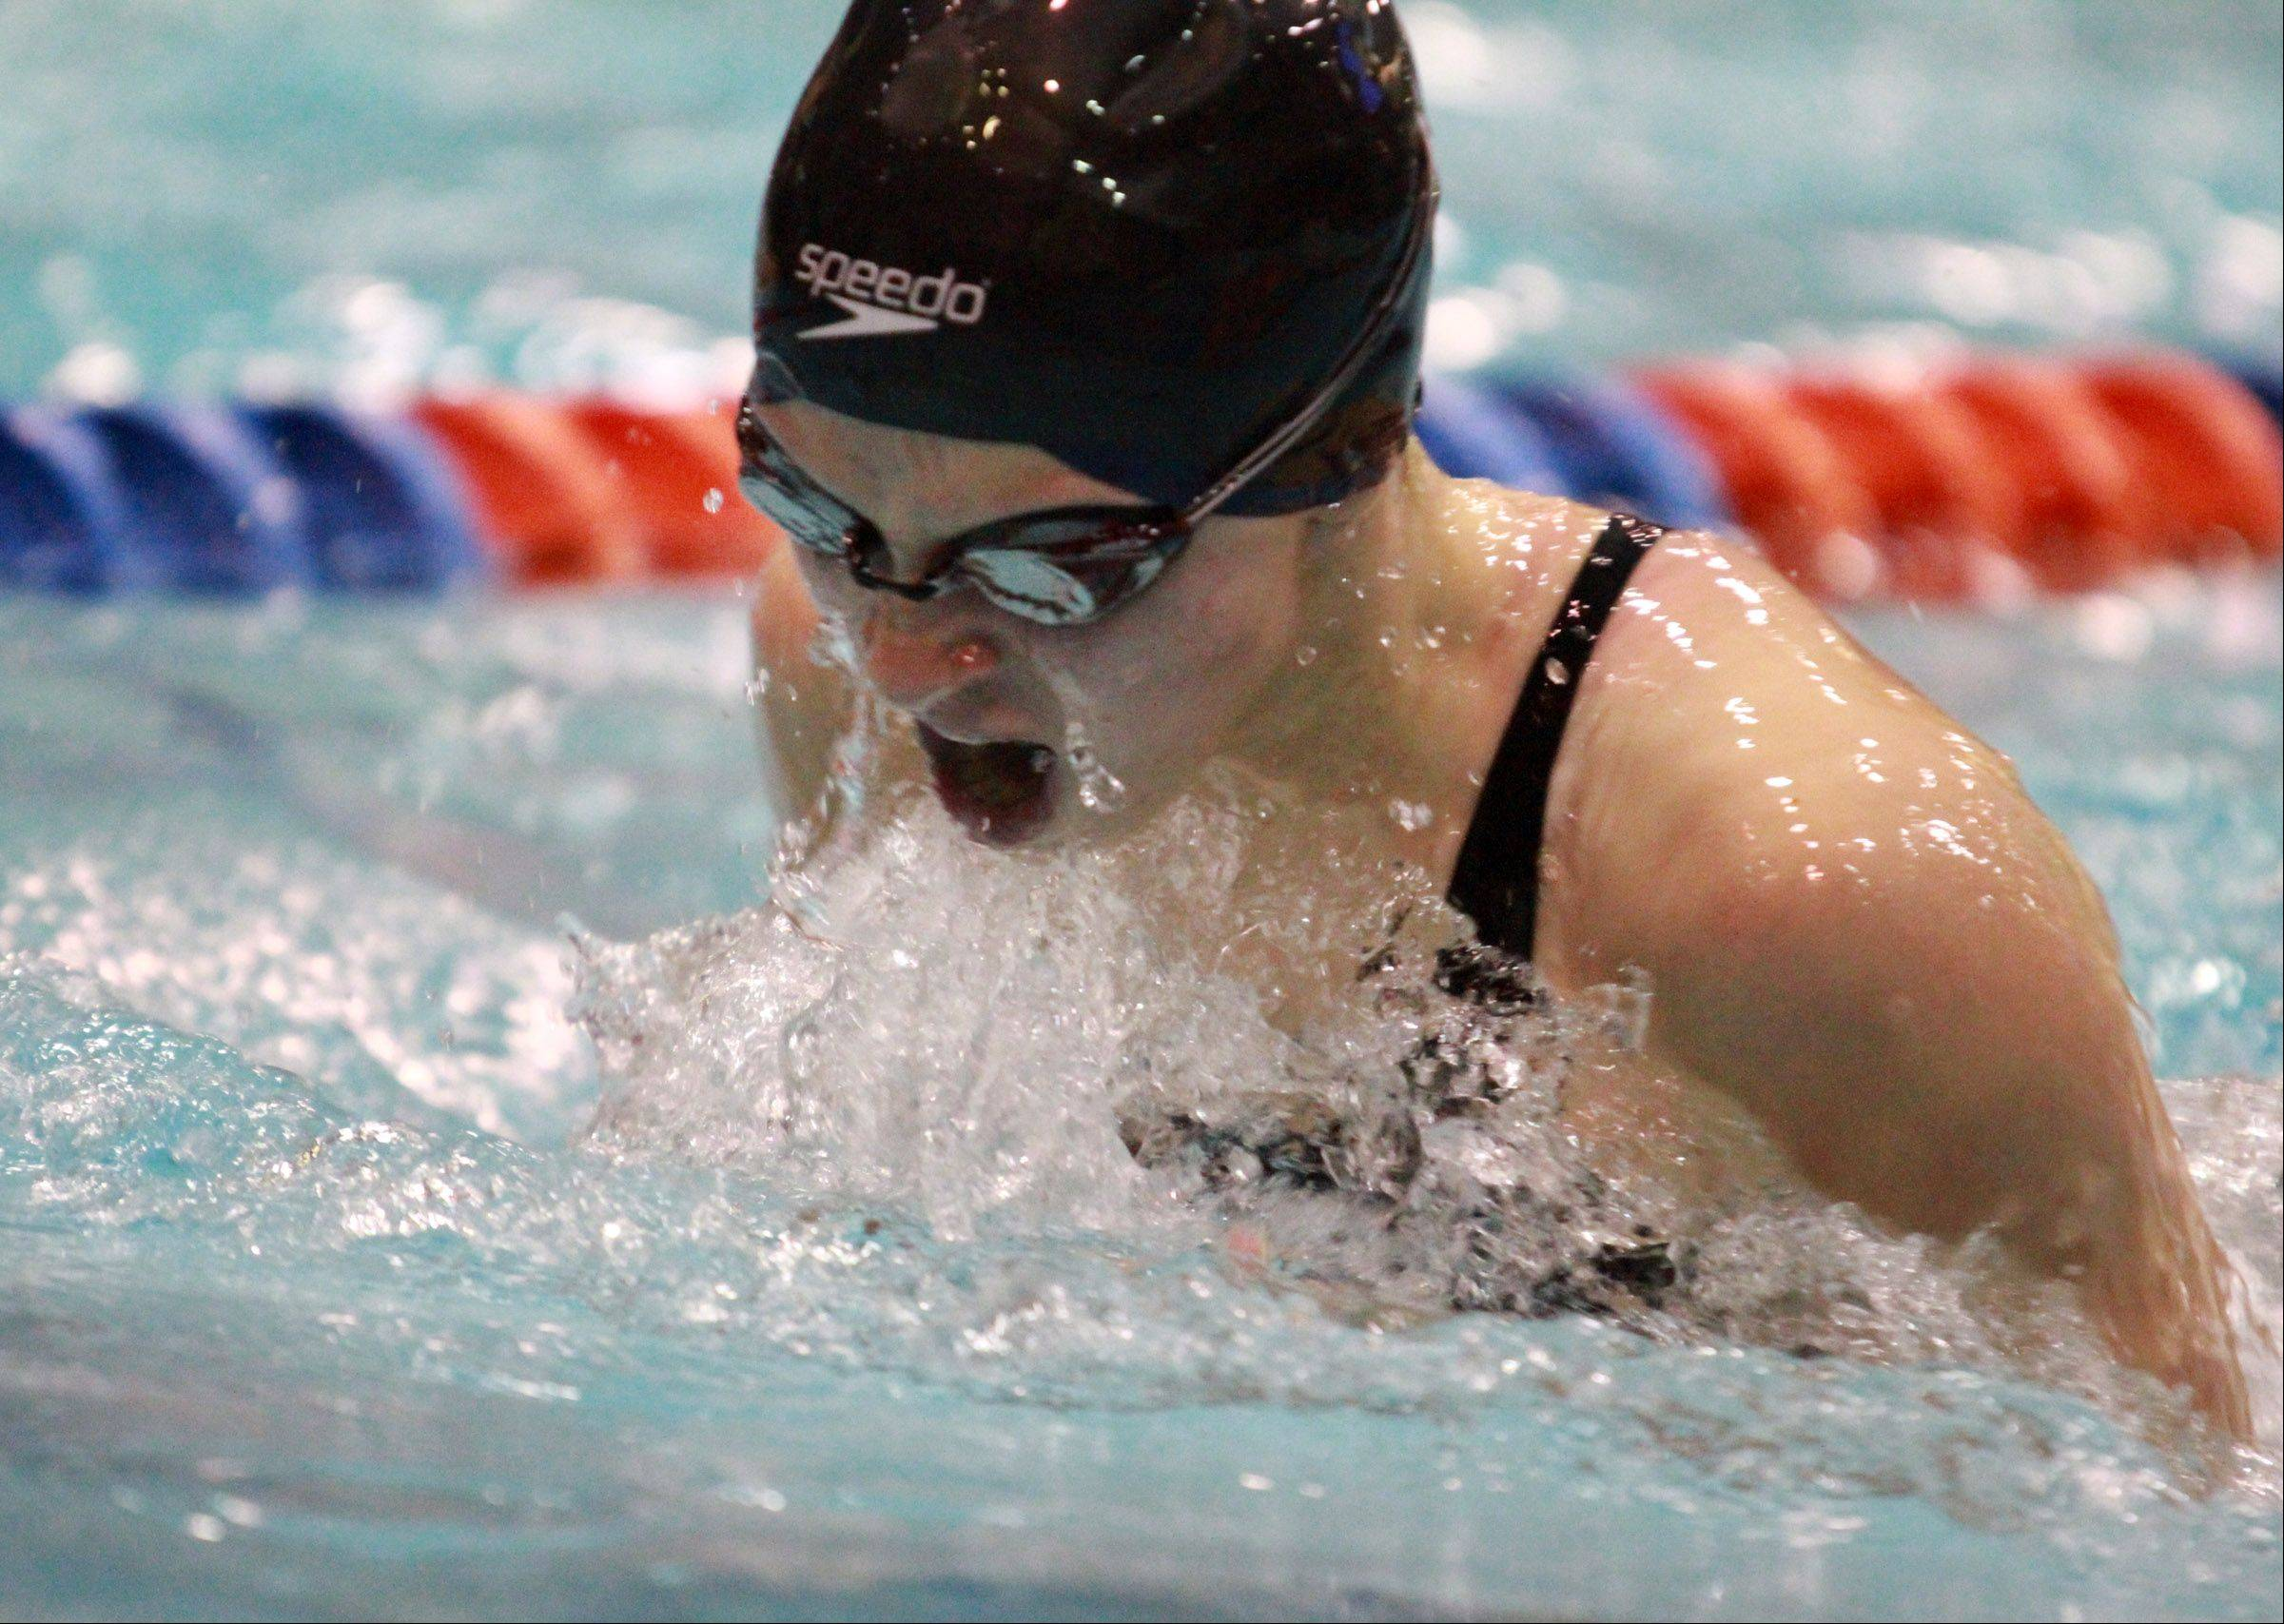 Cary-Grove�s Melissa Rose swims the 100-yard breaststroke at state preliminaries in Evanston last season. She will compete at the Barrington sectional on Saturday.